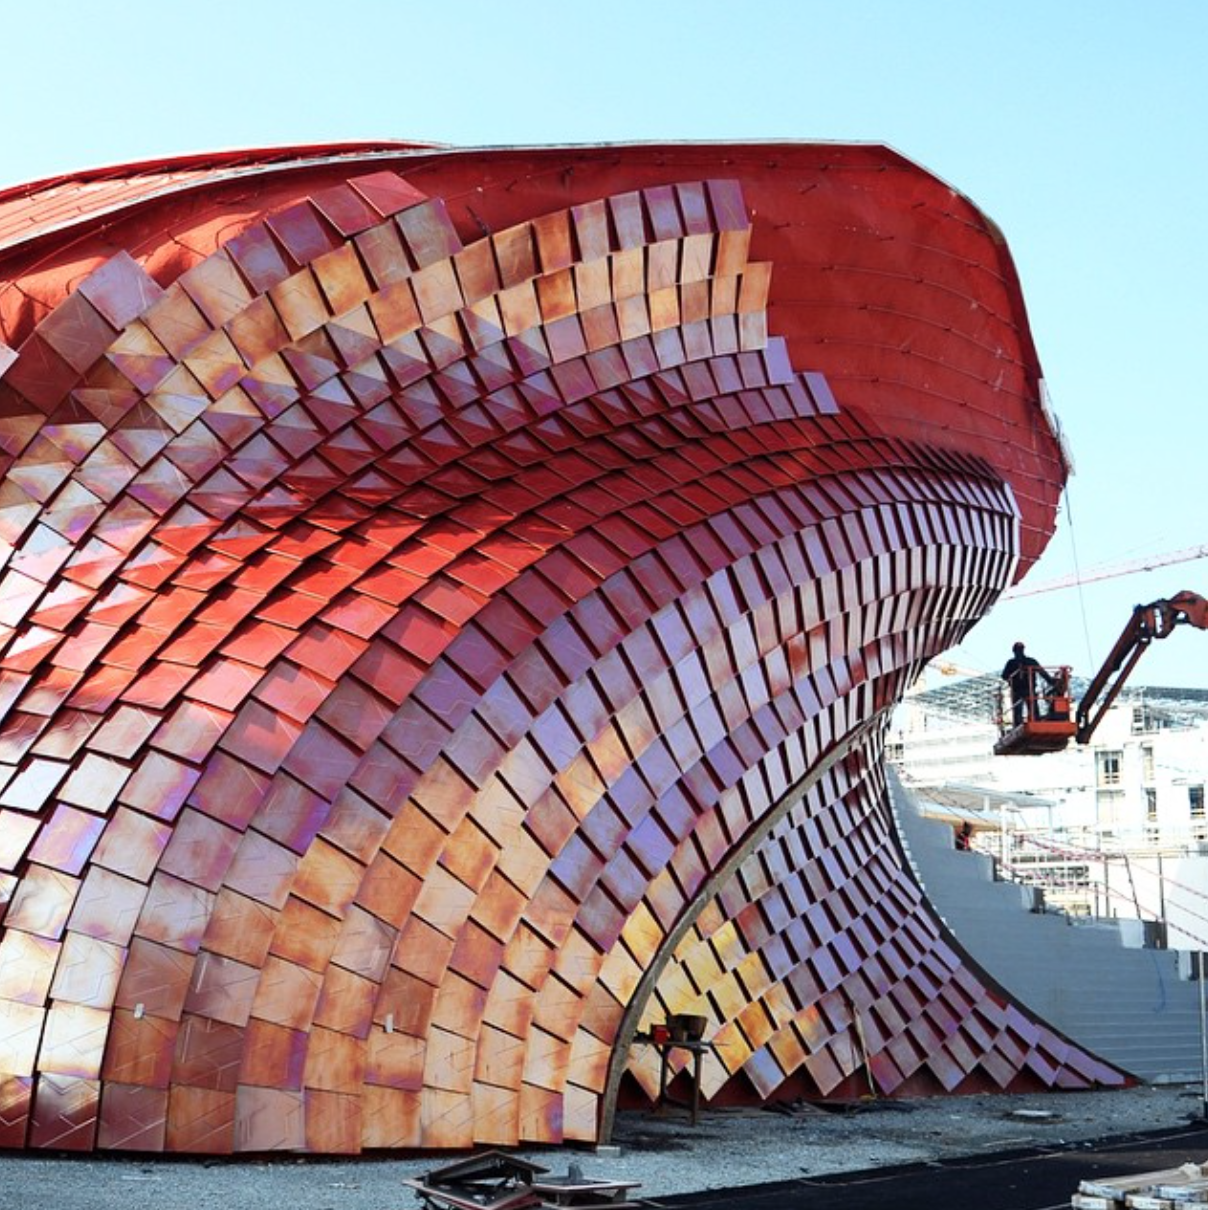 Milan Expo 2015: Photographic Updates Of The Pavilions In Progress